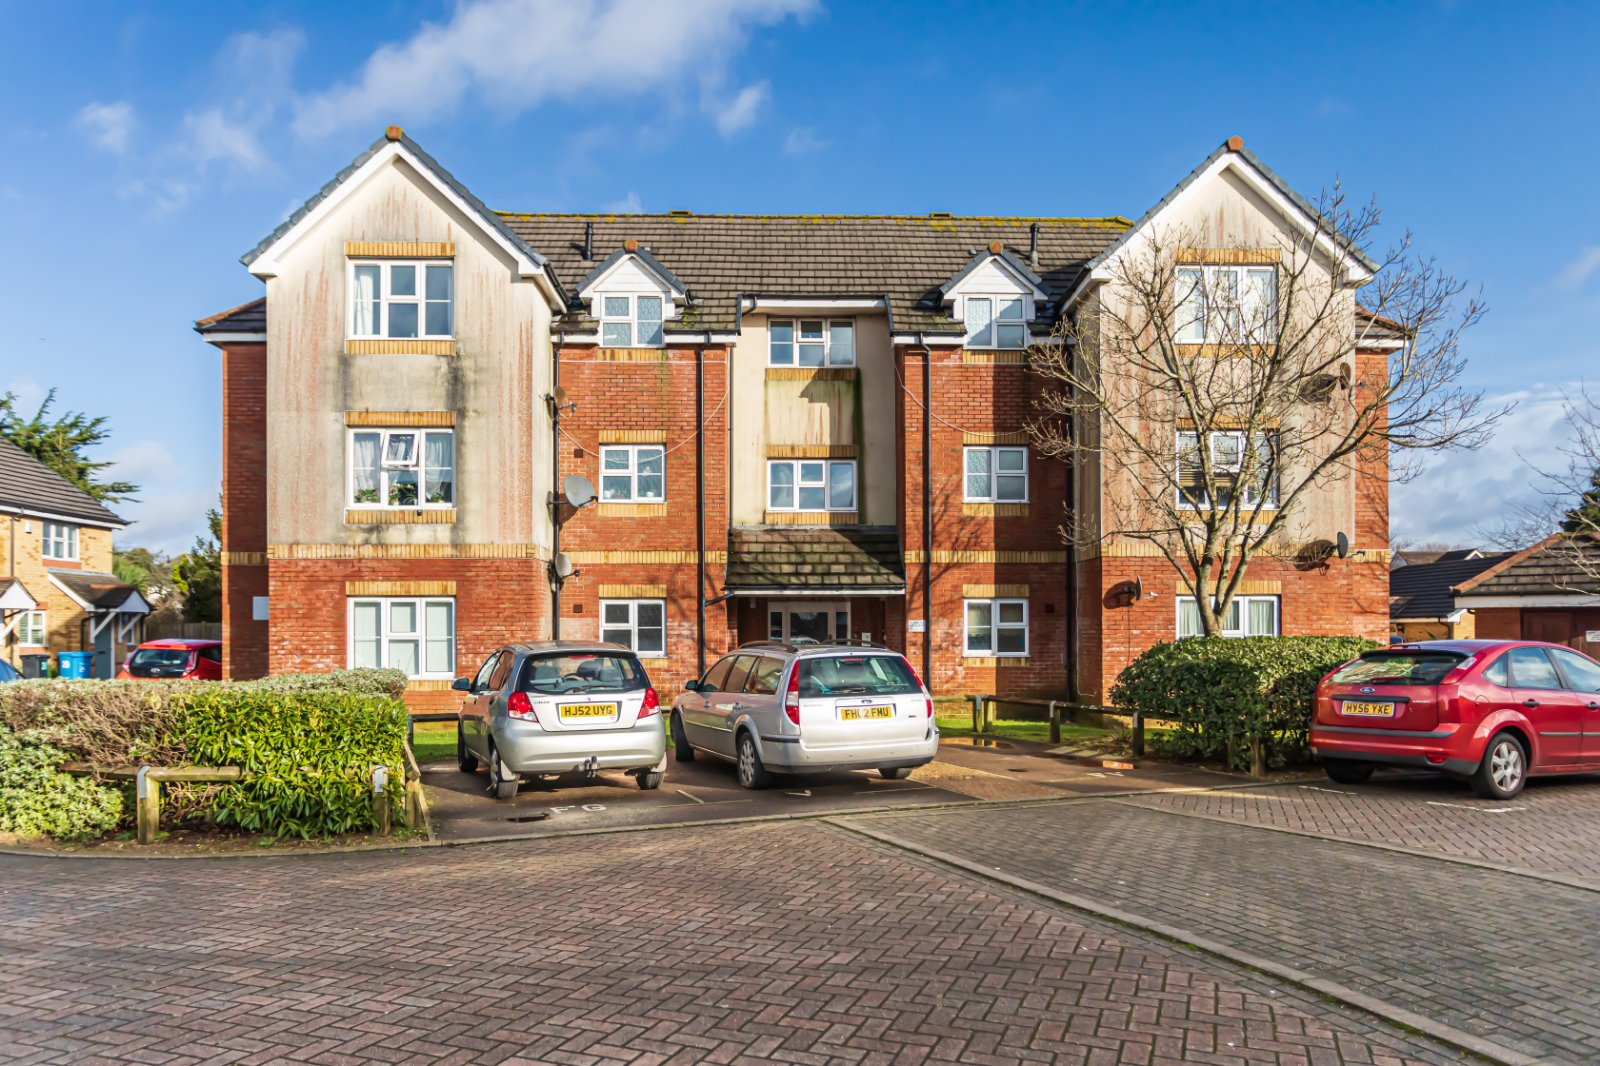 2 bed apartment for sale in Parkstone, BH12